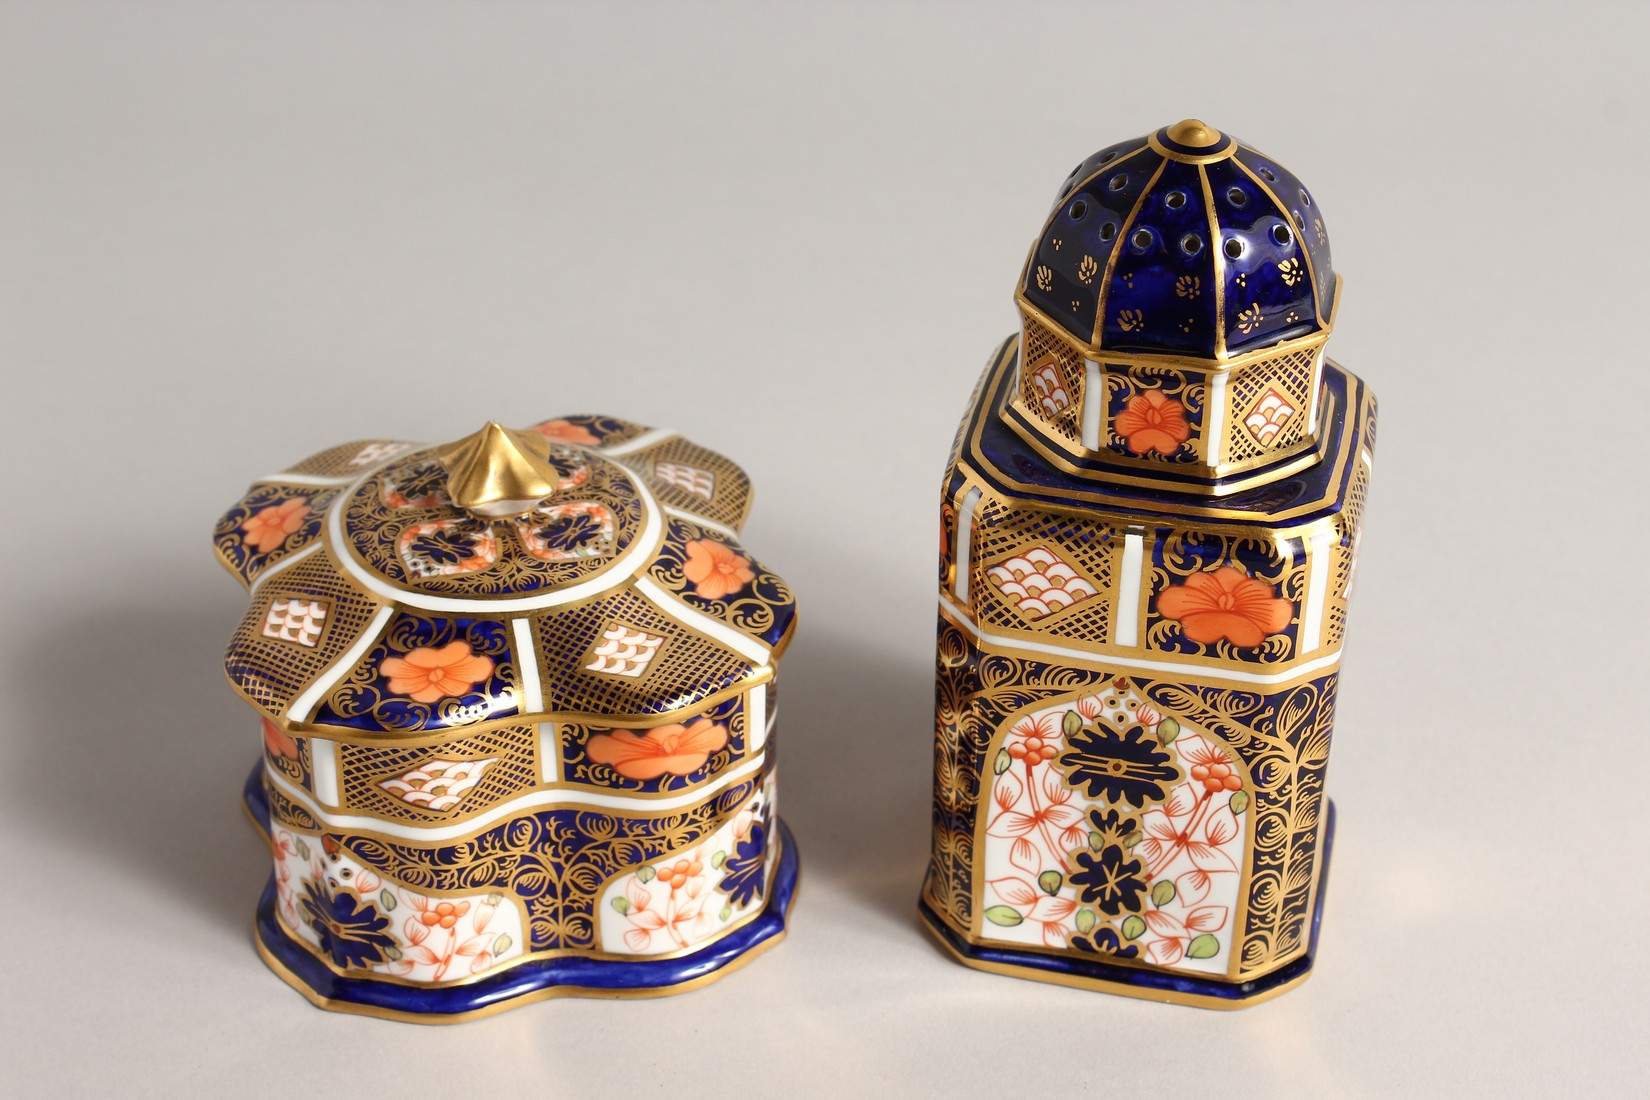 A ROYAL CROWN DERBY JAPAN PATTERN SQUARE SUGAR SIFTER, No. 1128. 6ins high and a SQUARE SUPERB BOX - Image 3 of 10